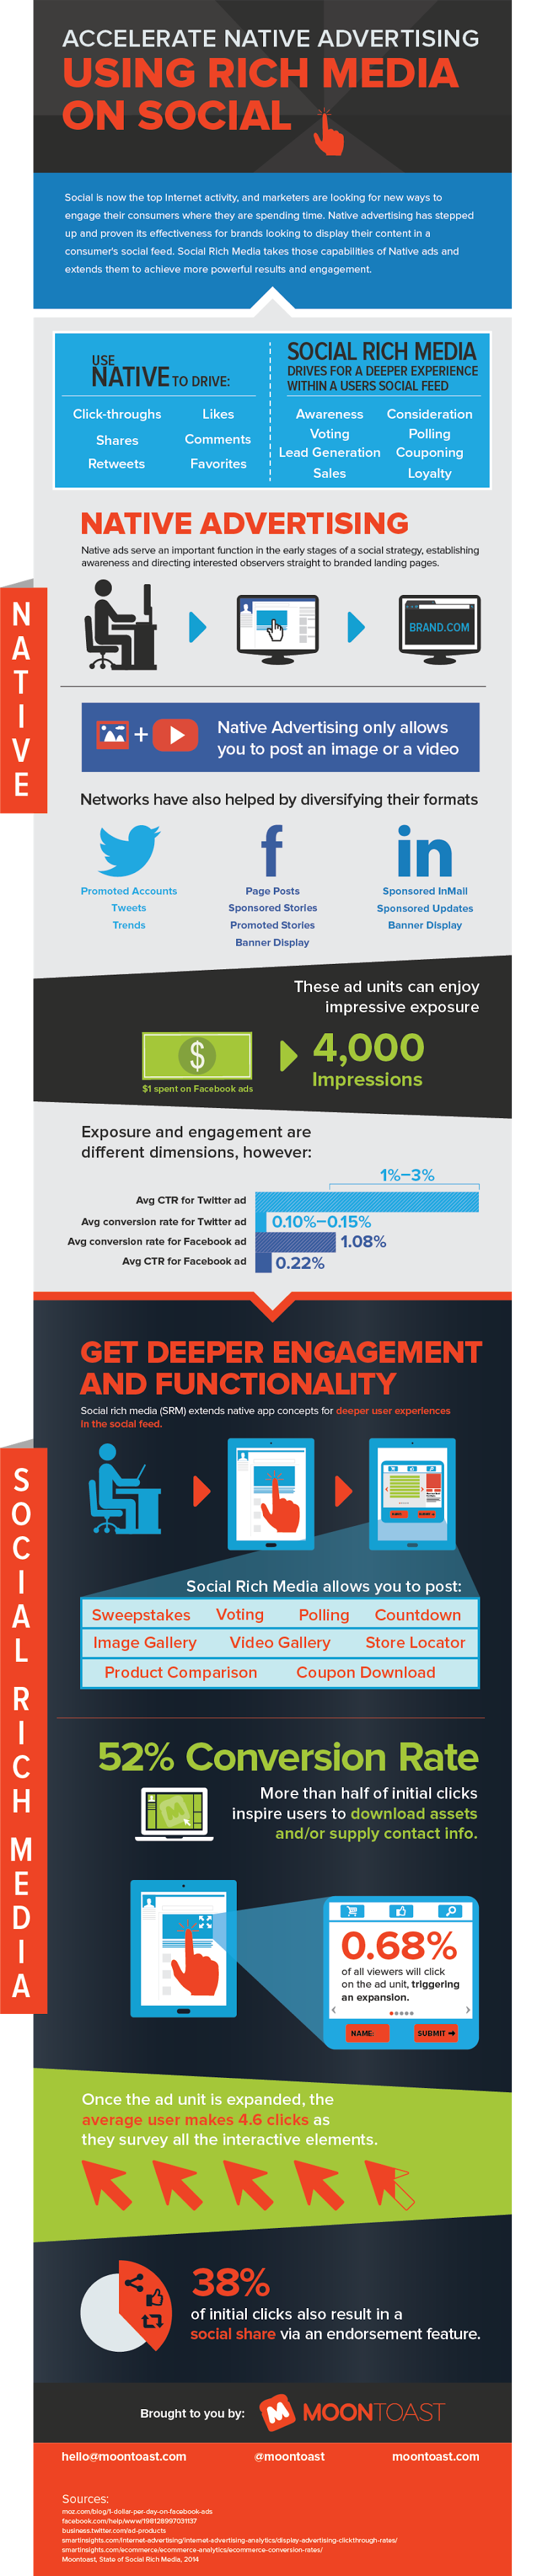 Infographic: Accelerating native advertising using rich media on Facebook - Twitter - LinkedIn